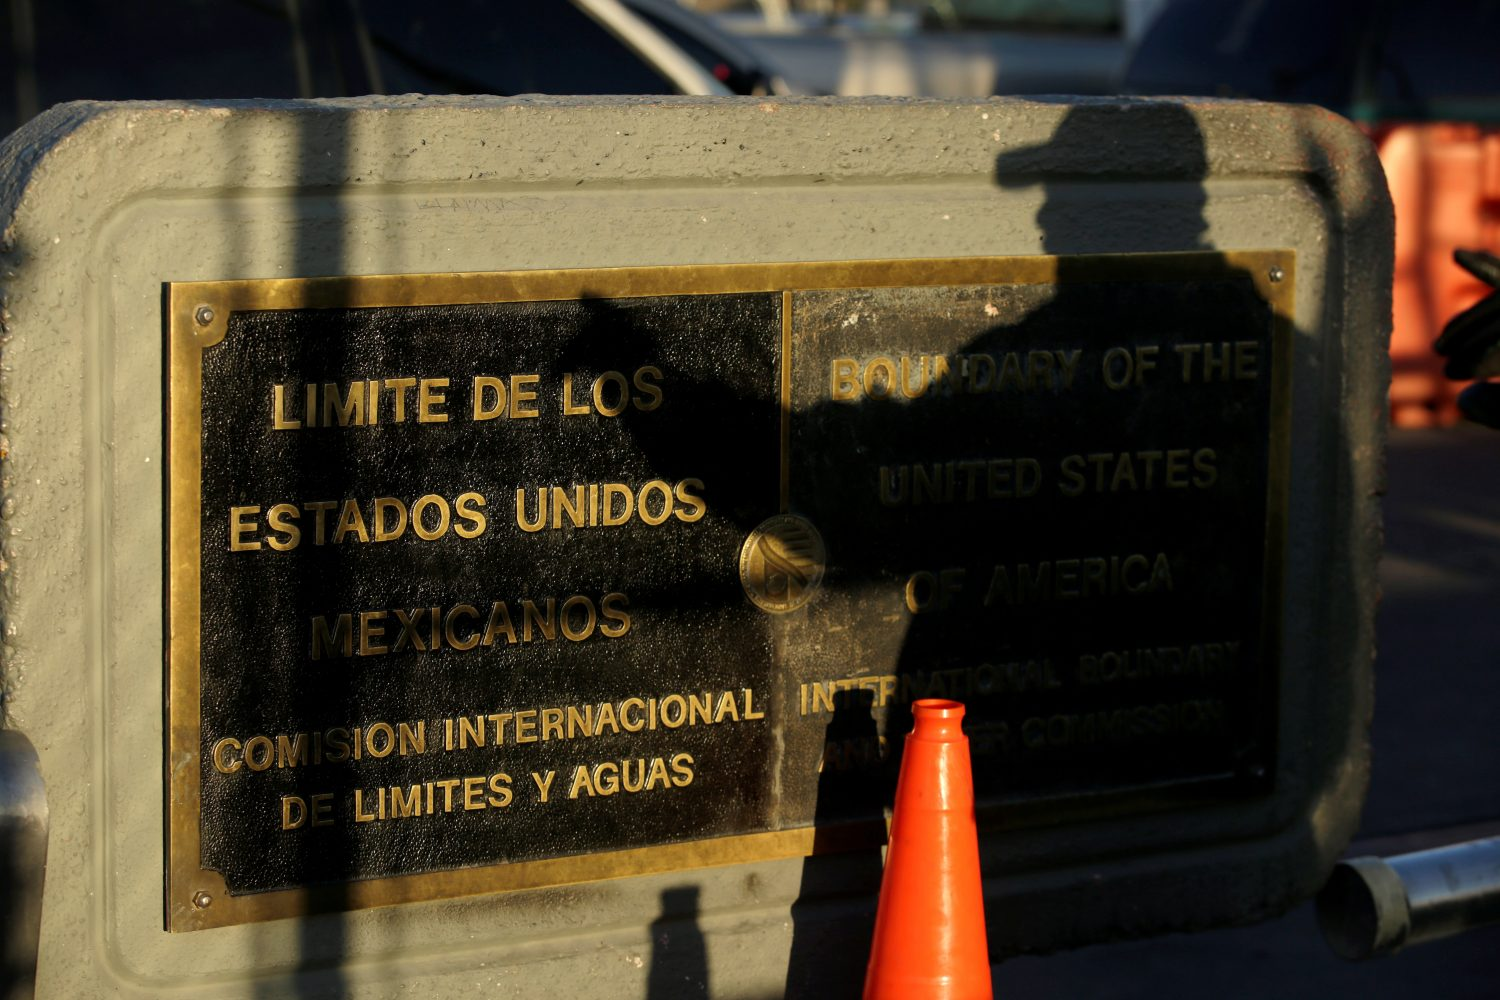 A U.S. Customs and Border Protection (CBP) agent cast his shadow on a plaque marking the boundaries of Mexico and United States, at Paso del Norte international border crossing bridge, in Ciudad Juarez, Mexico April 1, 2019. REUTERS/Jose Luis Gonzalez